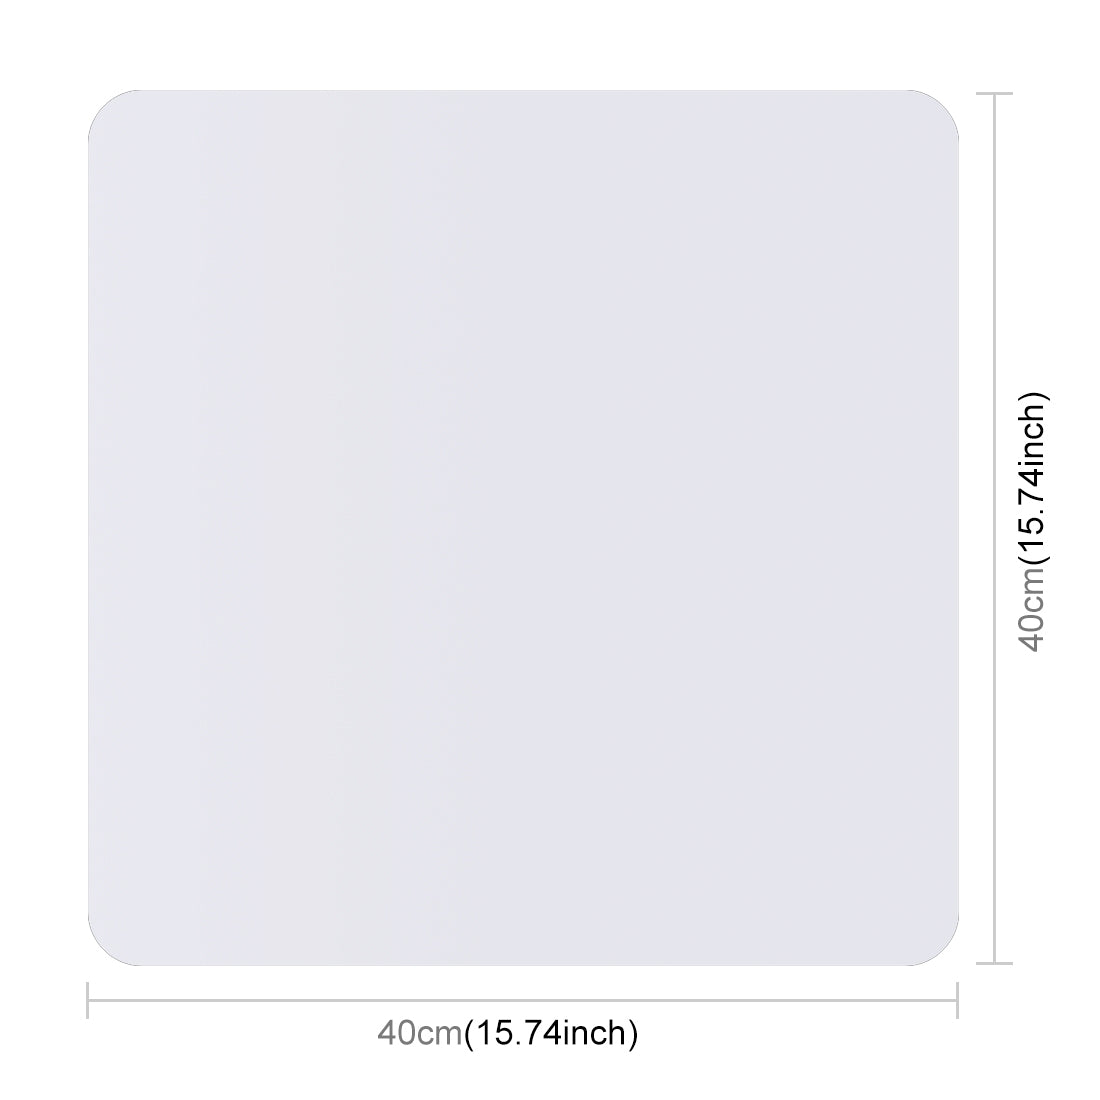 40cm Photography Acrylic Reflective Display Table Background Board(White)